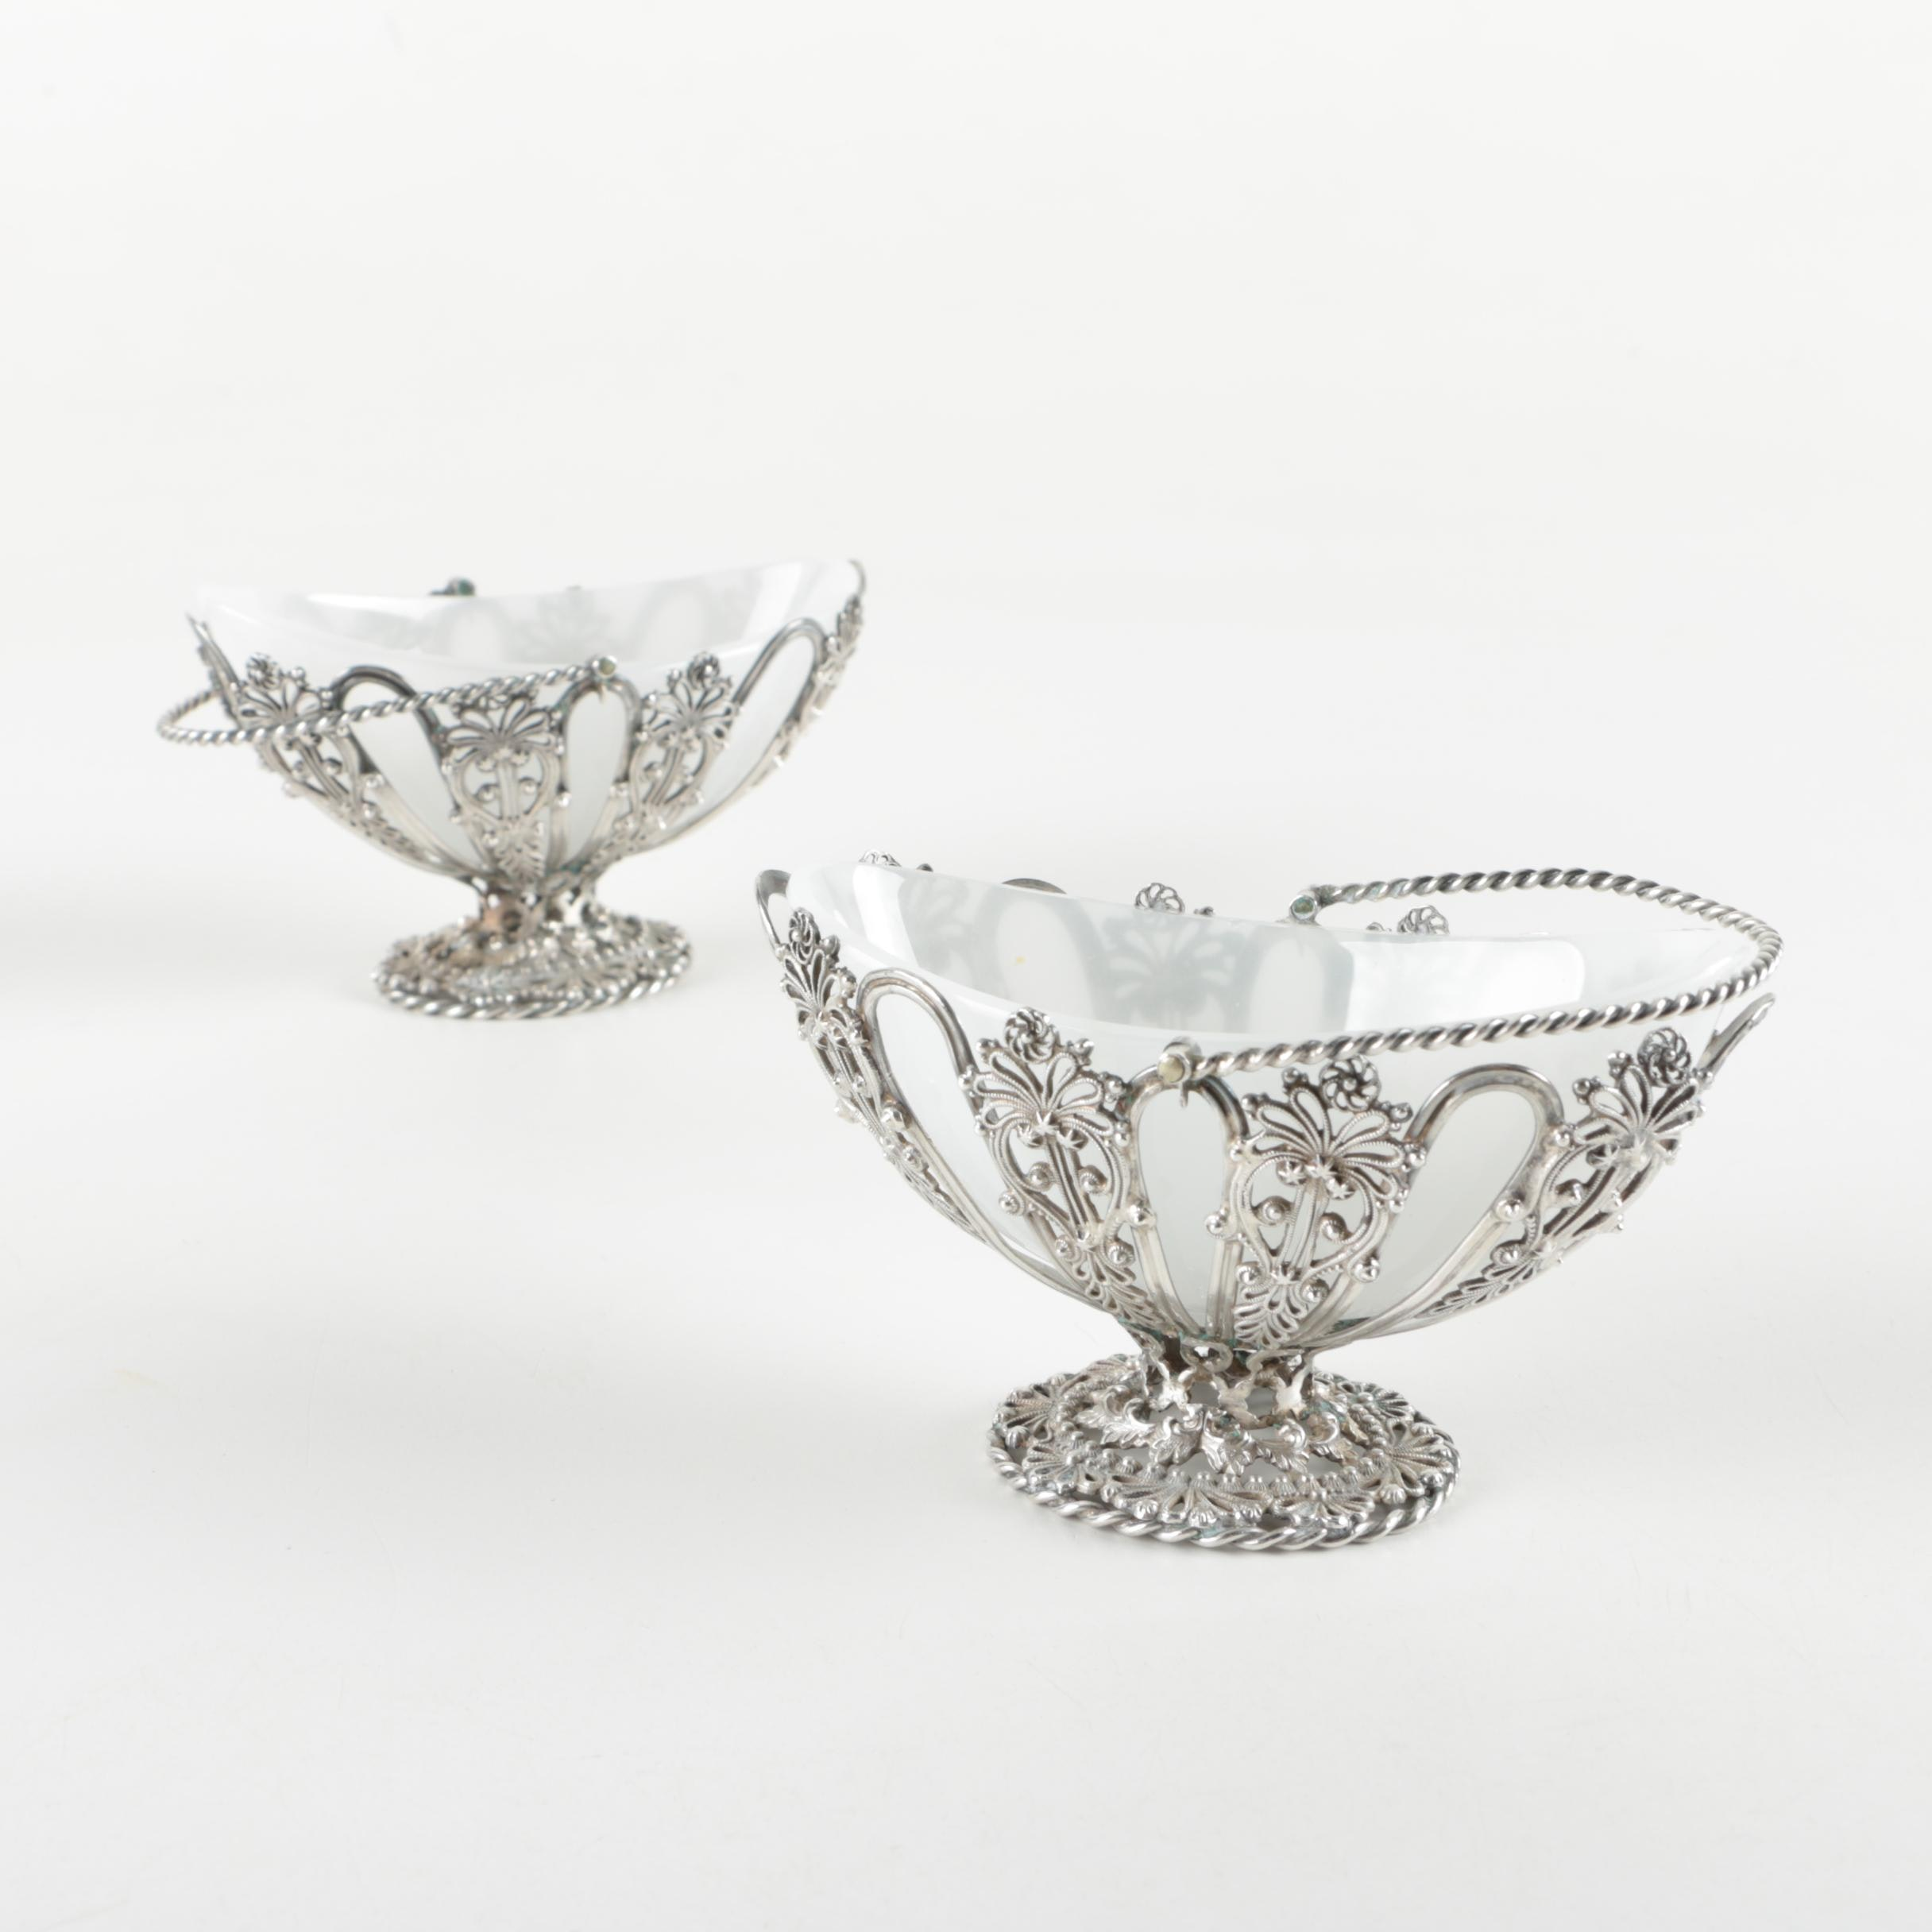 1853 Catwright, Hirons & Woodward Sterling Silver and Glass Baskets